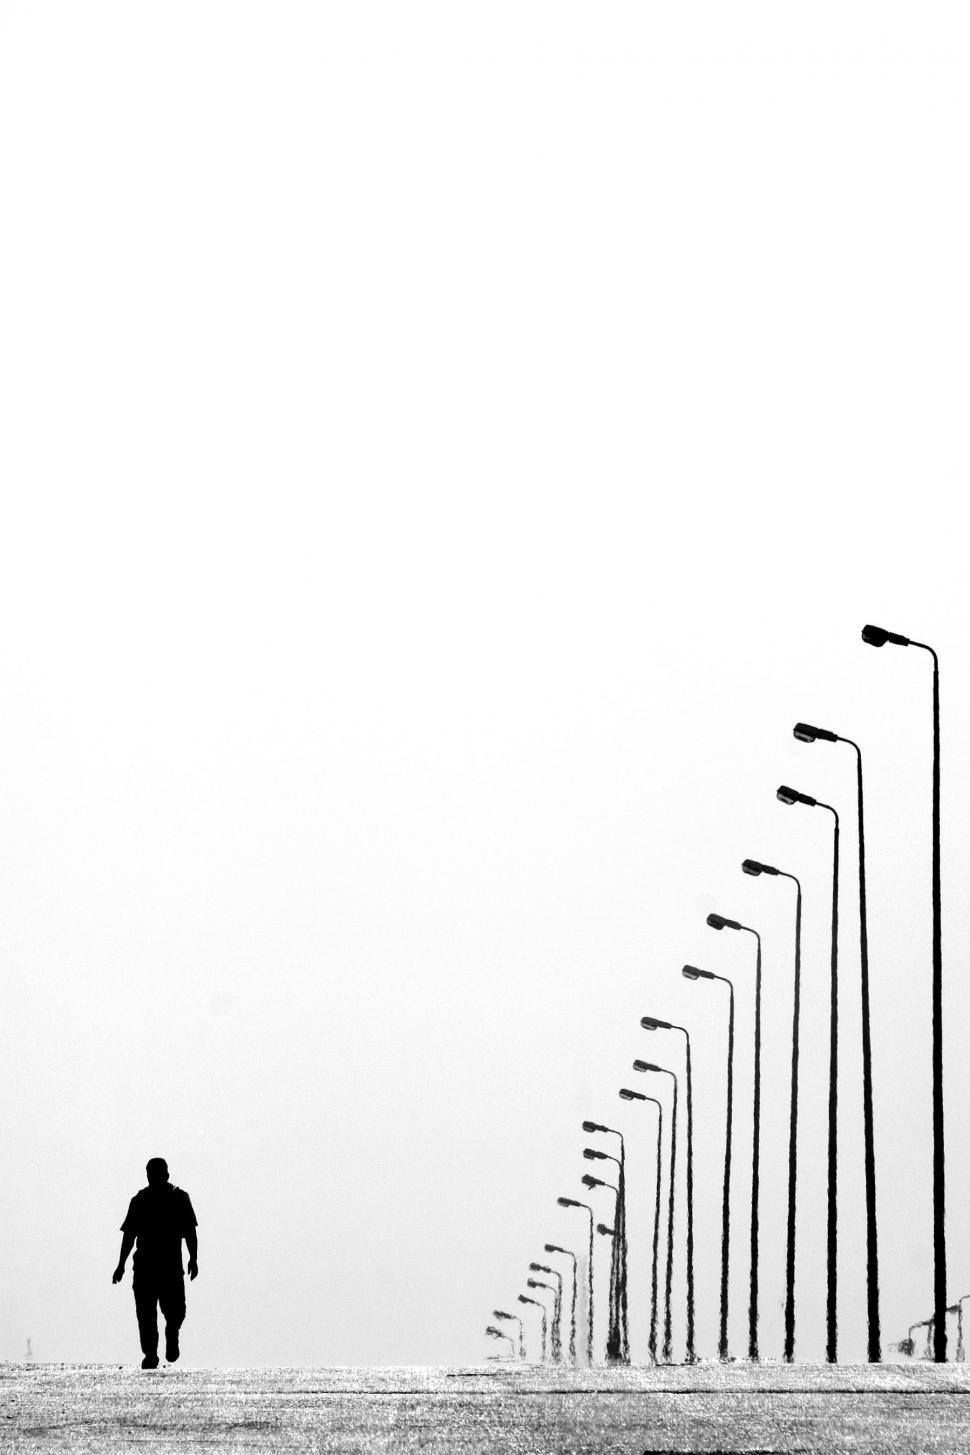 Download Free Stock HD Photo of Silhouette of walking man besides row of lamp posts  Online